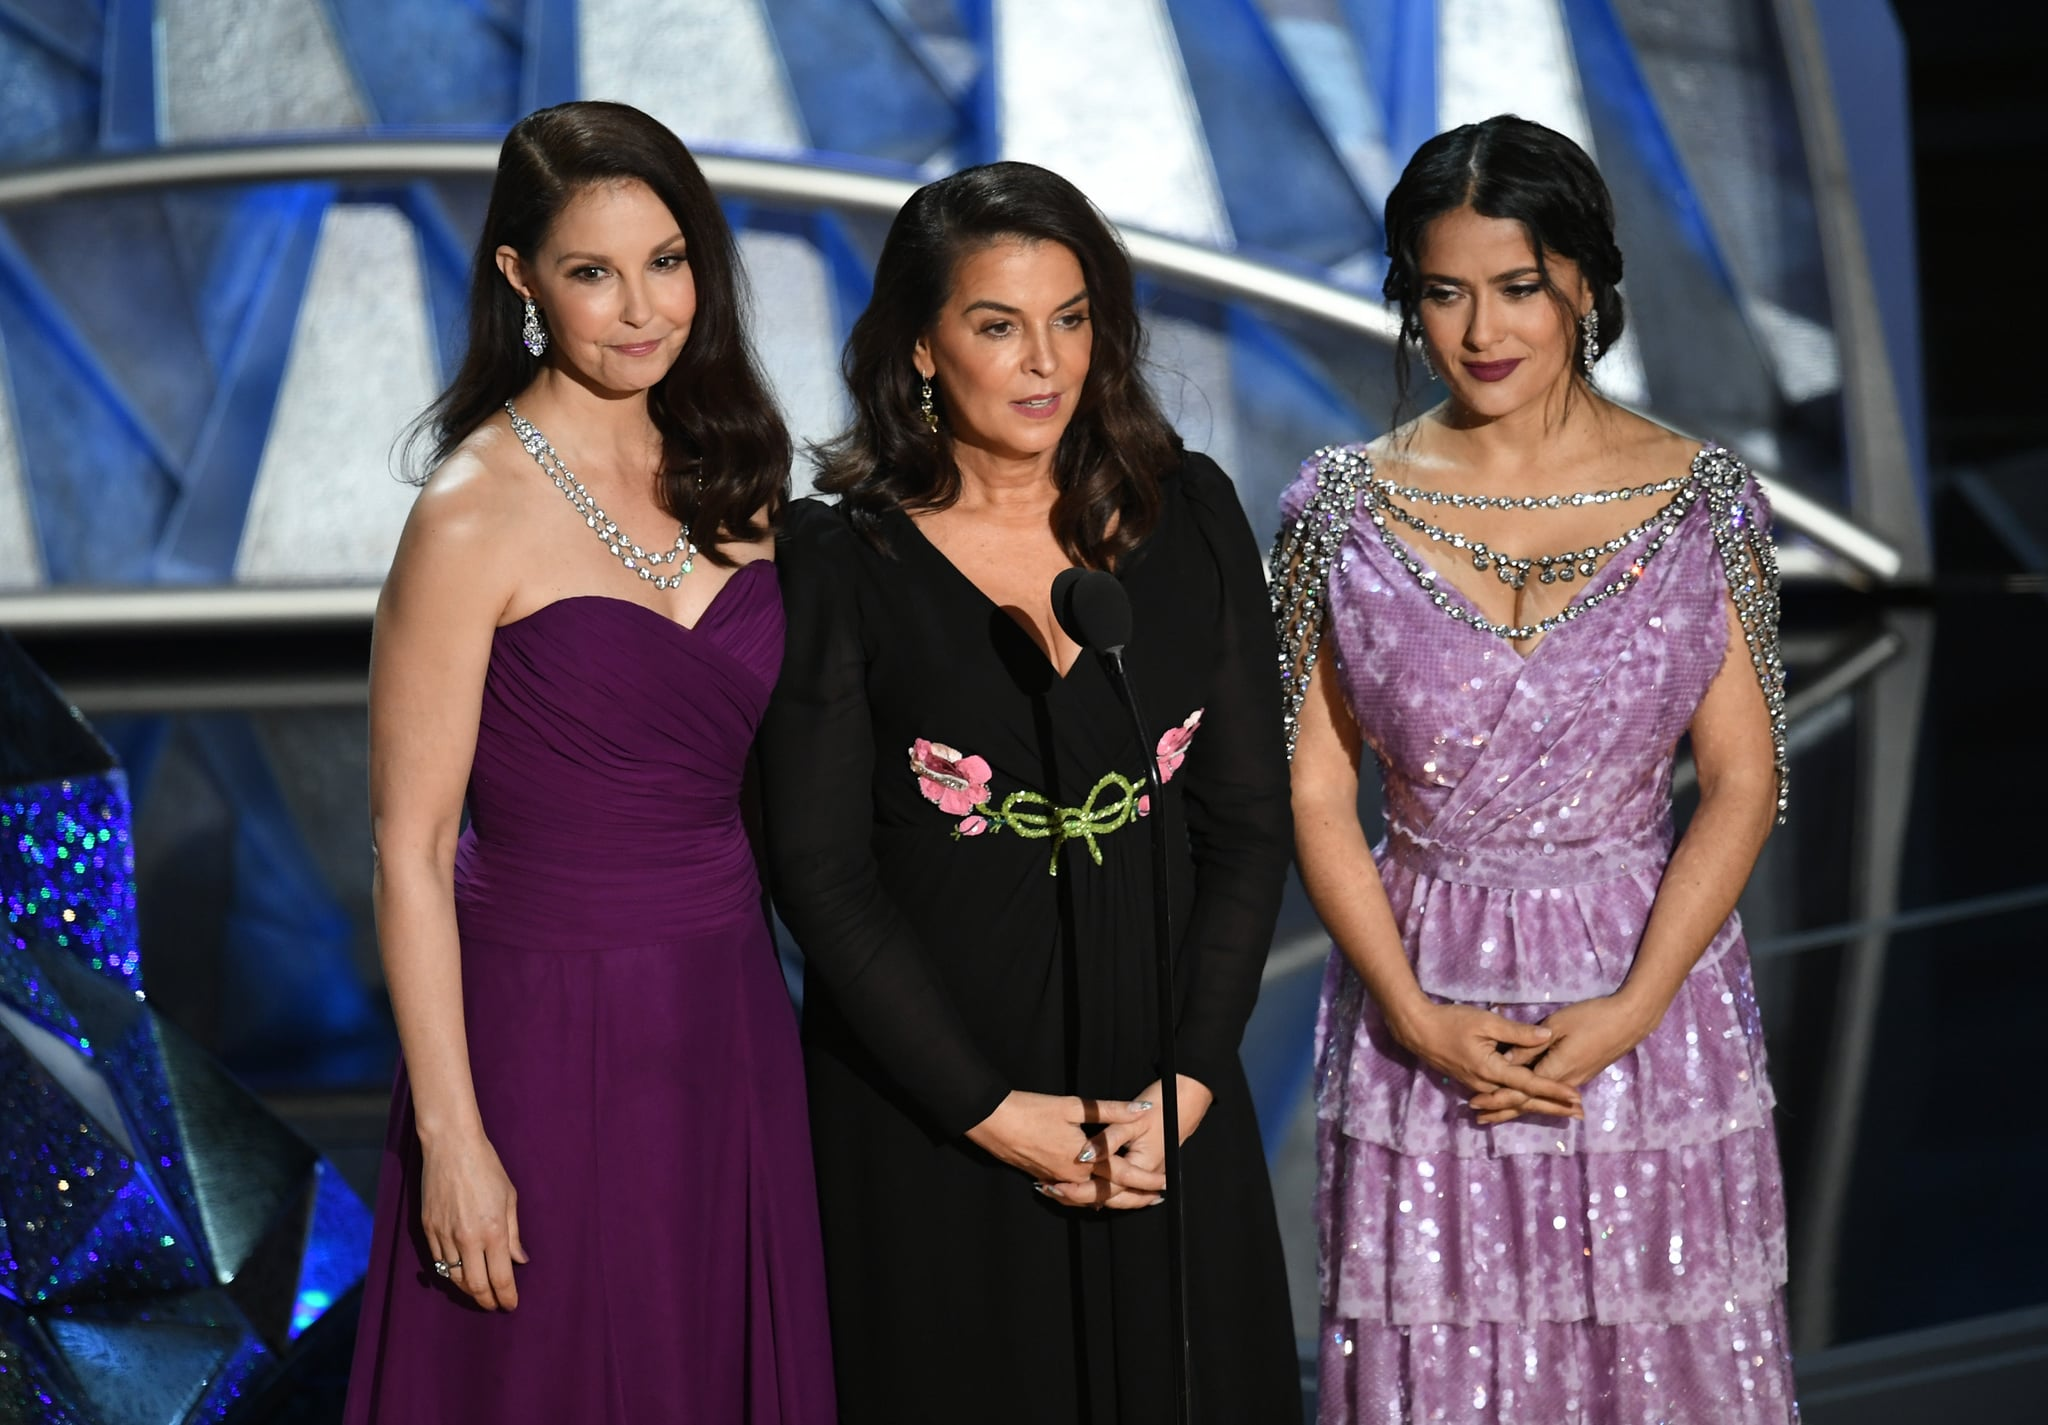 HOLLYWOOD, CA - MARCH 04:  (L-R) Actors Ashley Judd, Annabella Sciorra and Salma Hayek speak onstage during the 90th Annual Academy Awards at the Dolby Theatre at Hollywood & Highland Center on March 4, 2018 in Hollywood, California.  (Photo by Kevin Winter/Getty Images)